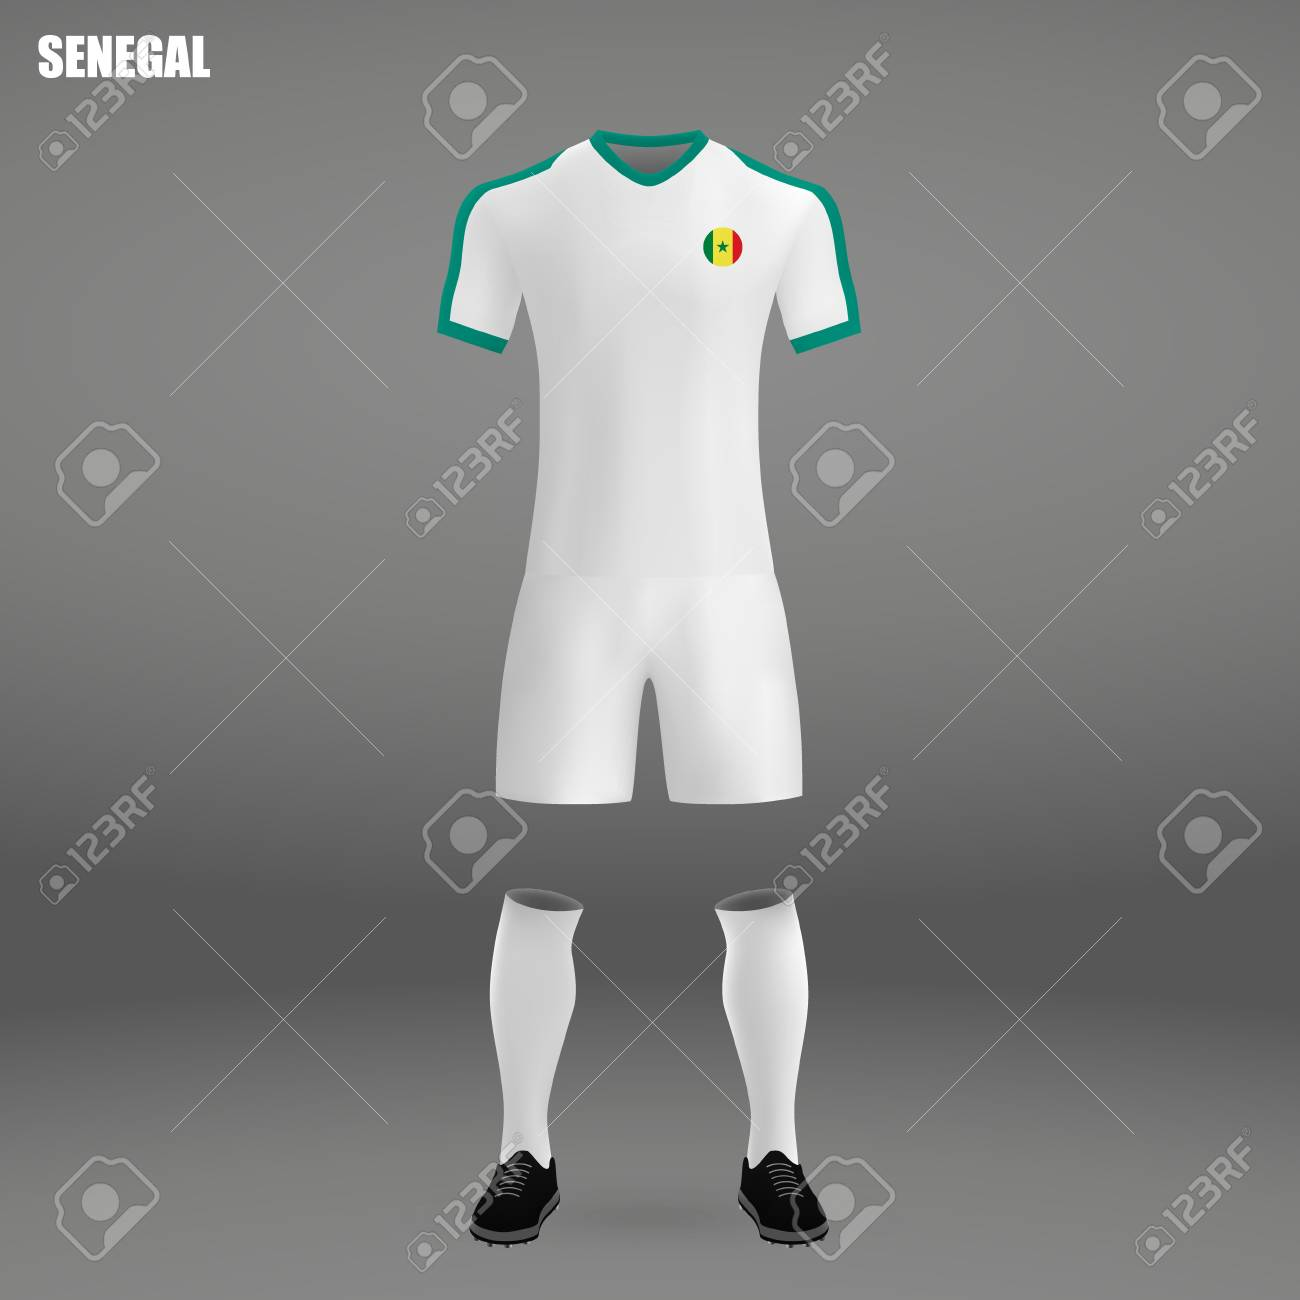 online store ce670 3f579 football kit of Senegal 2018, t-shirt template for soccer jersey...